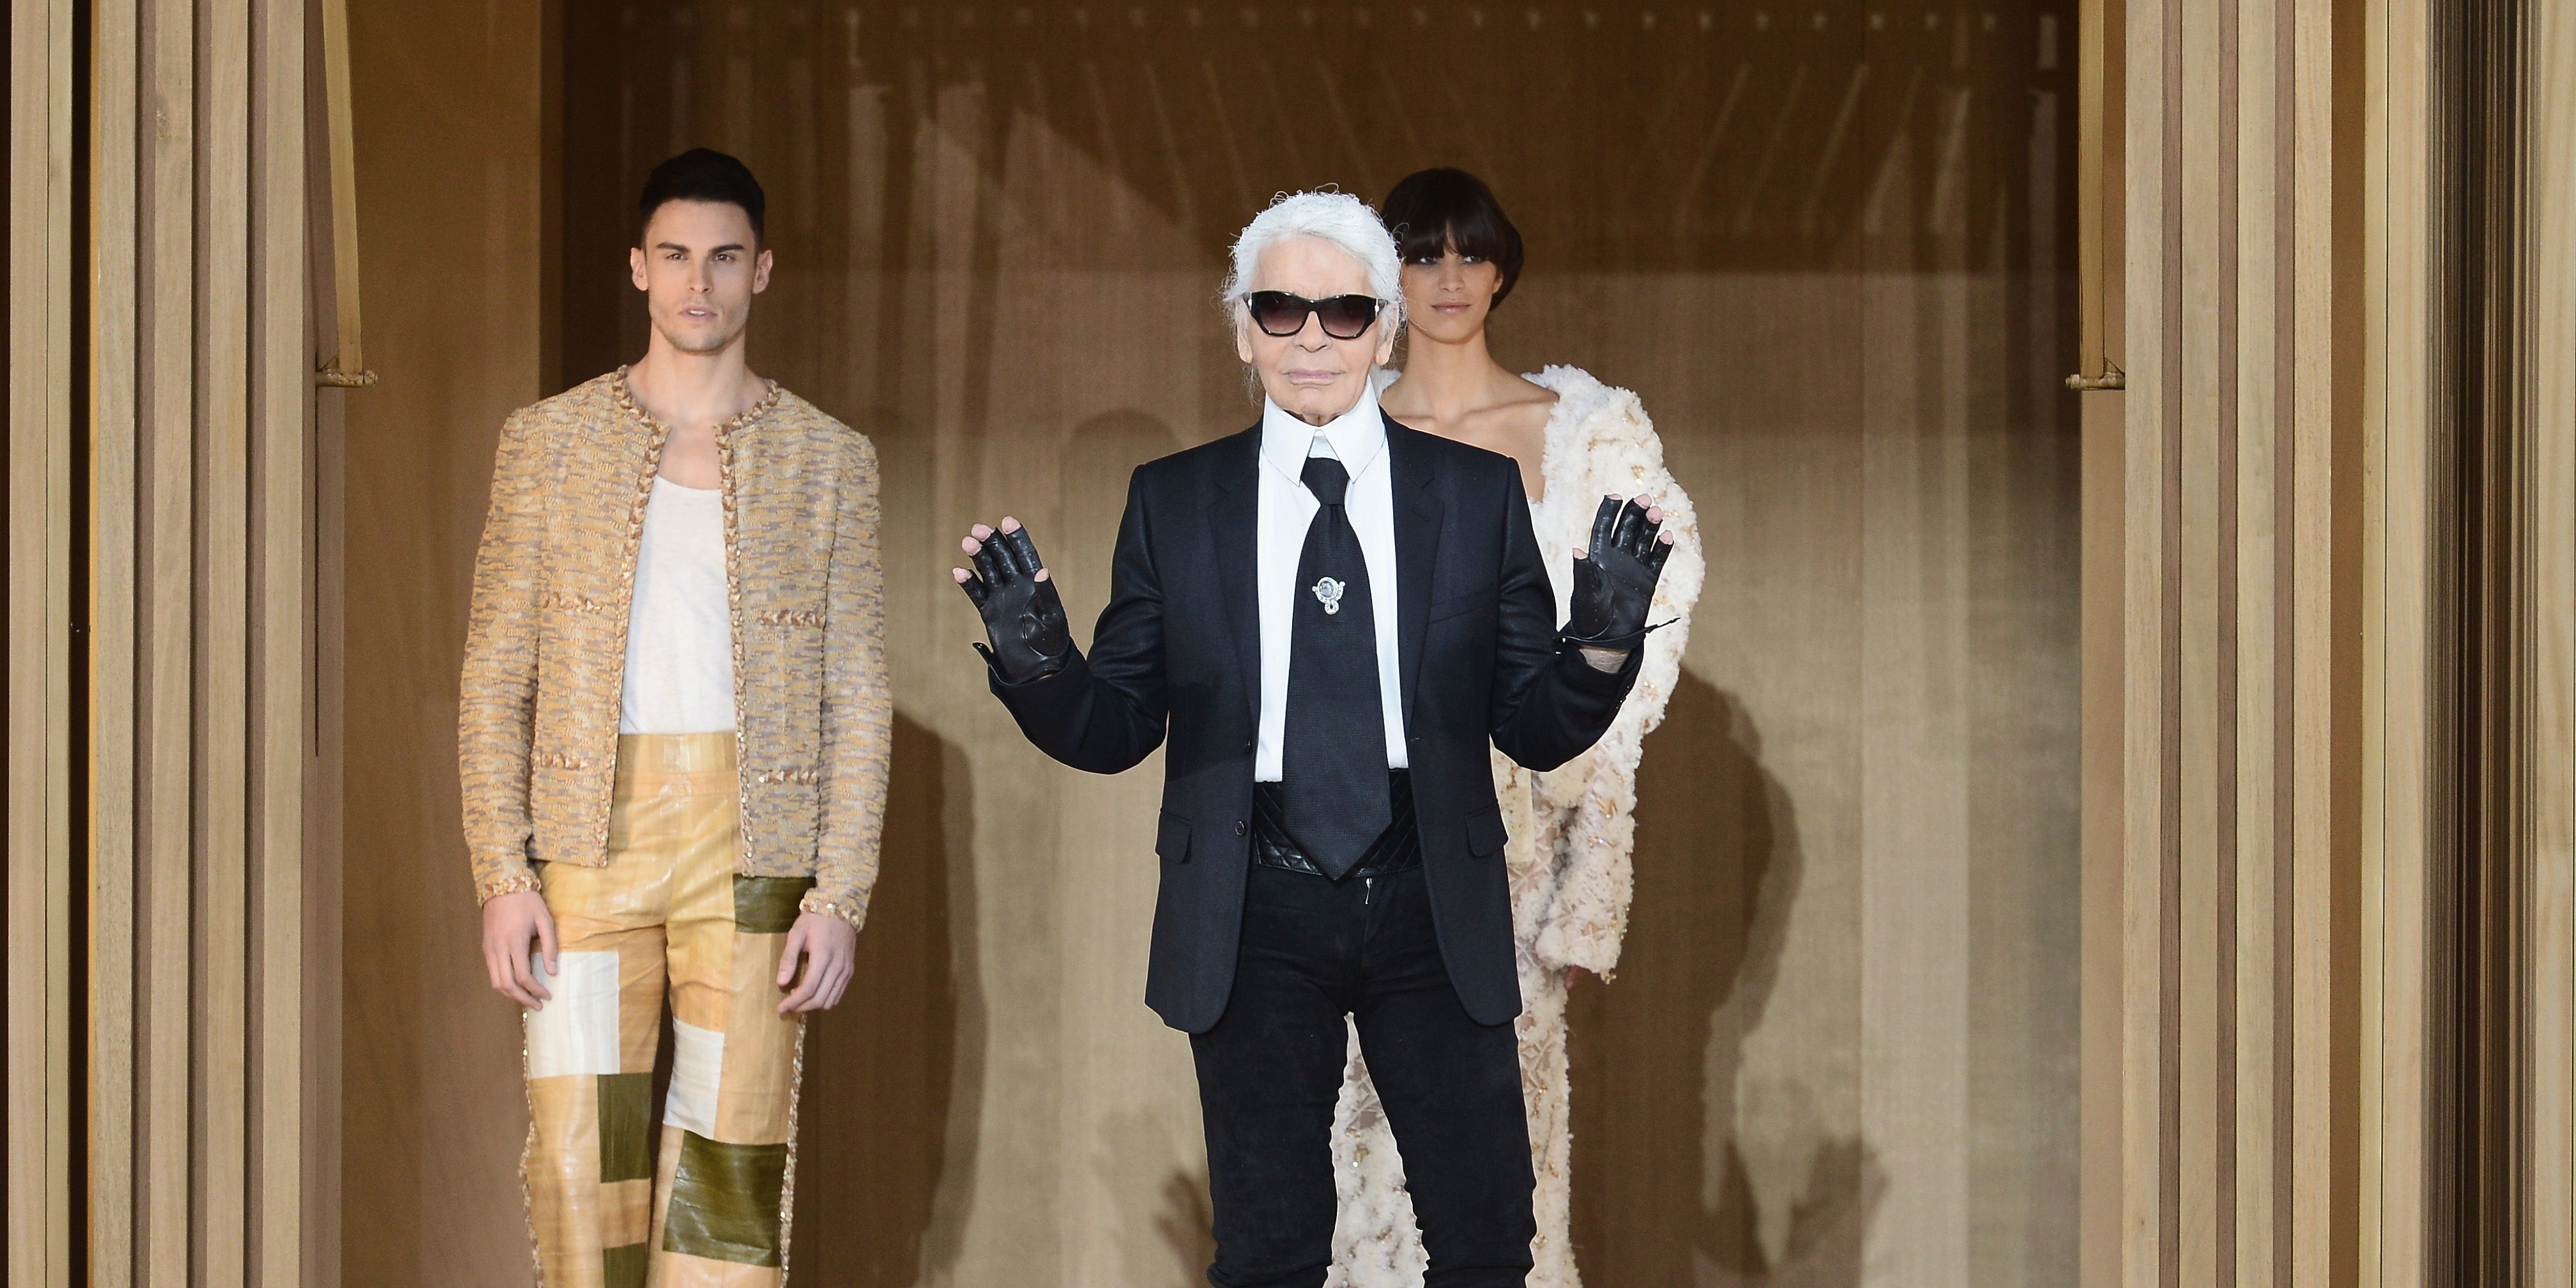 chanel-haute-couture-show-karl-lagerfeld